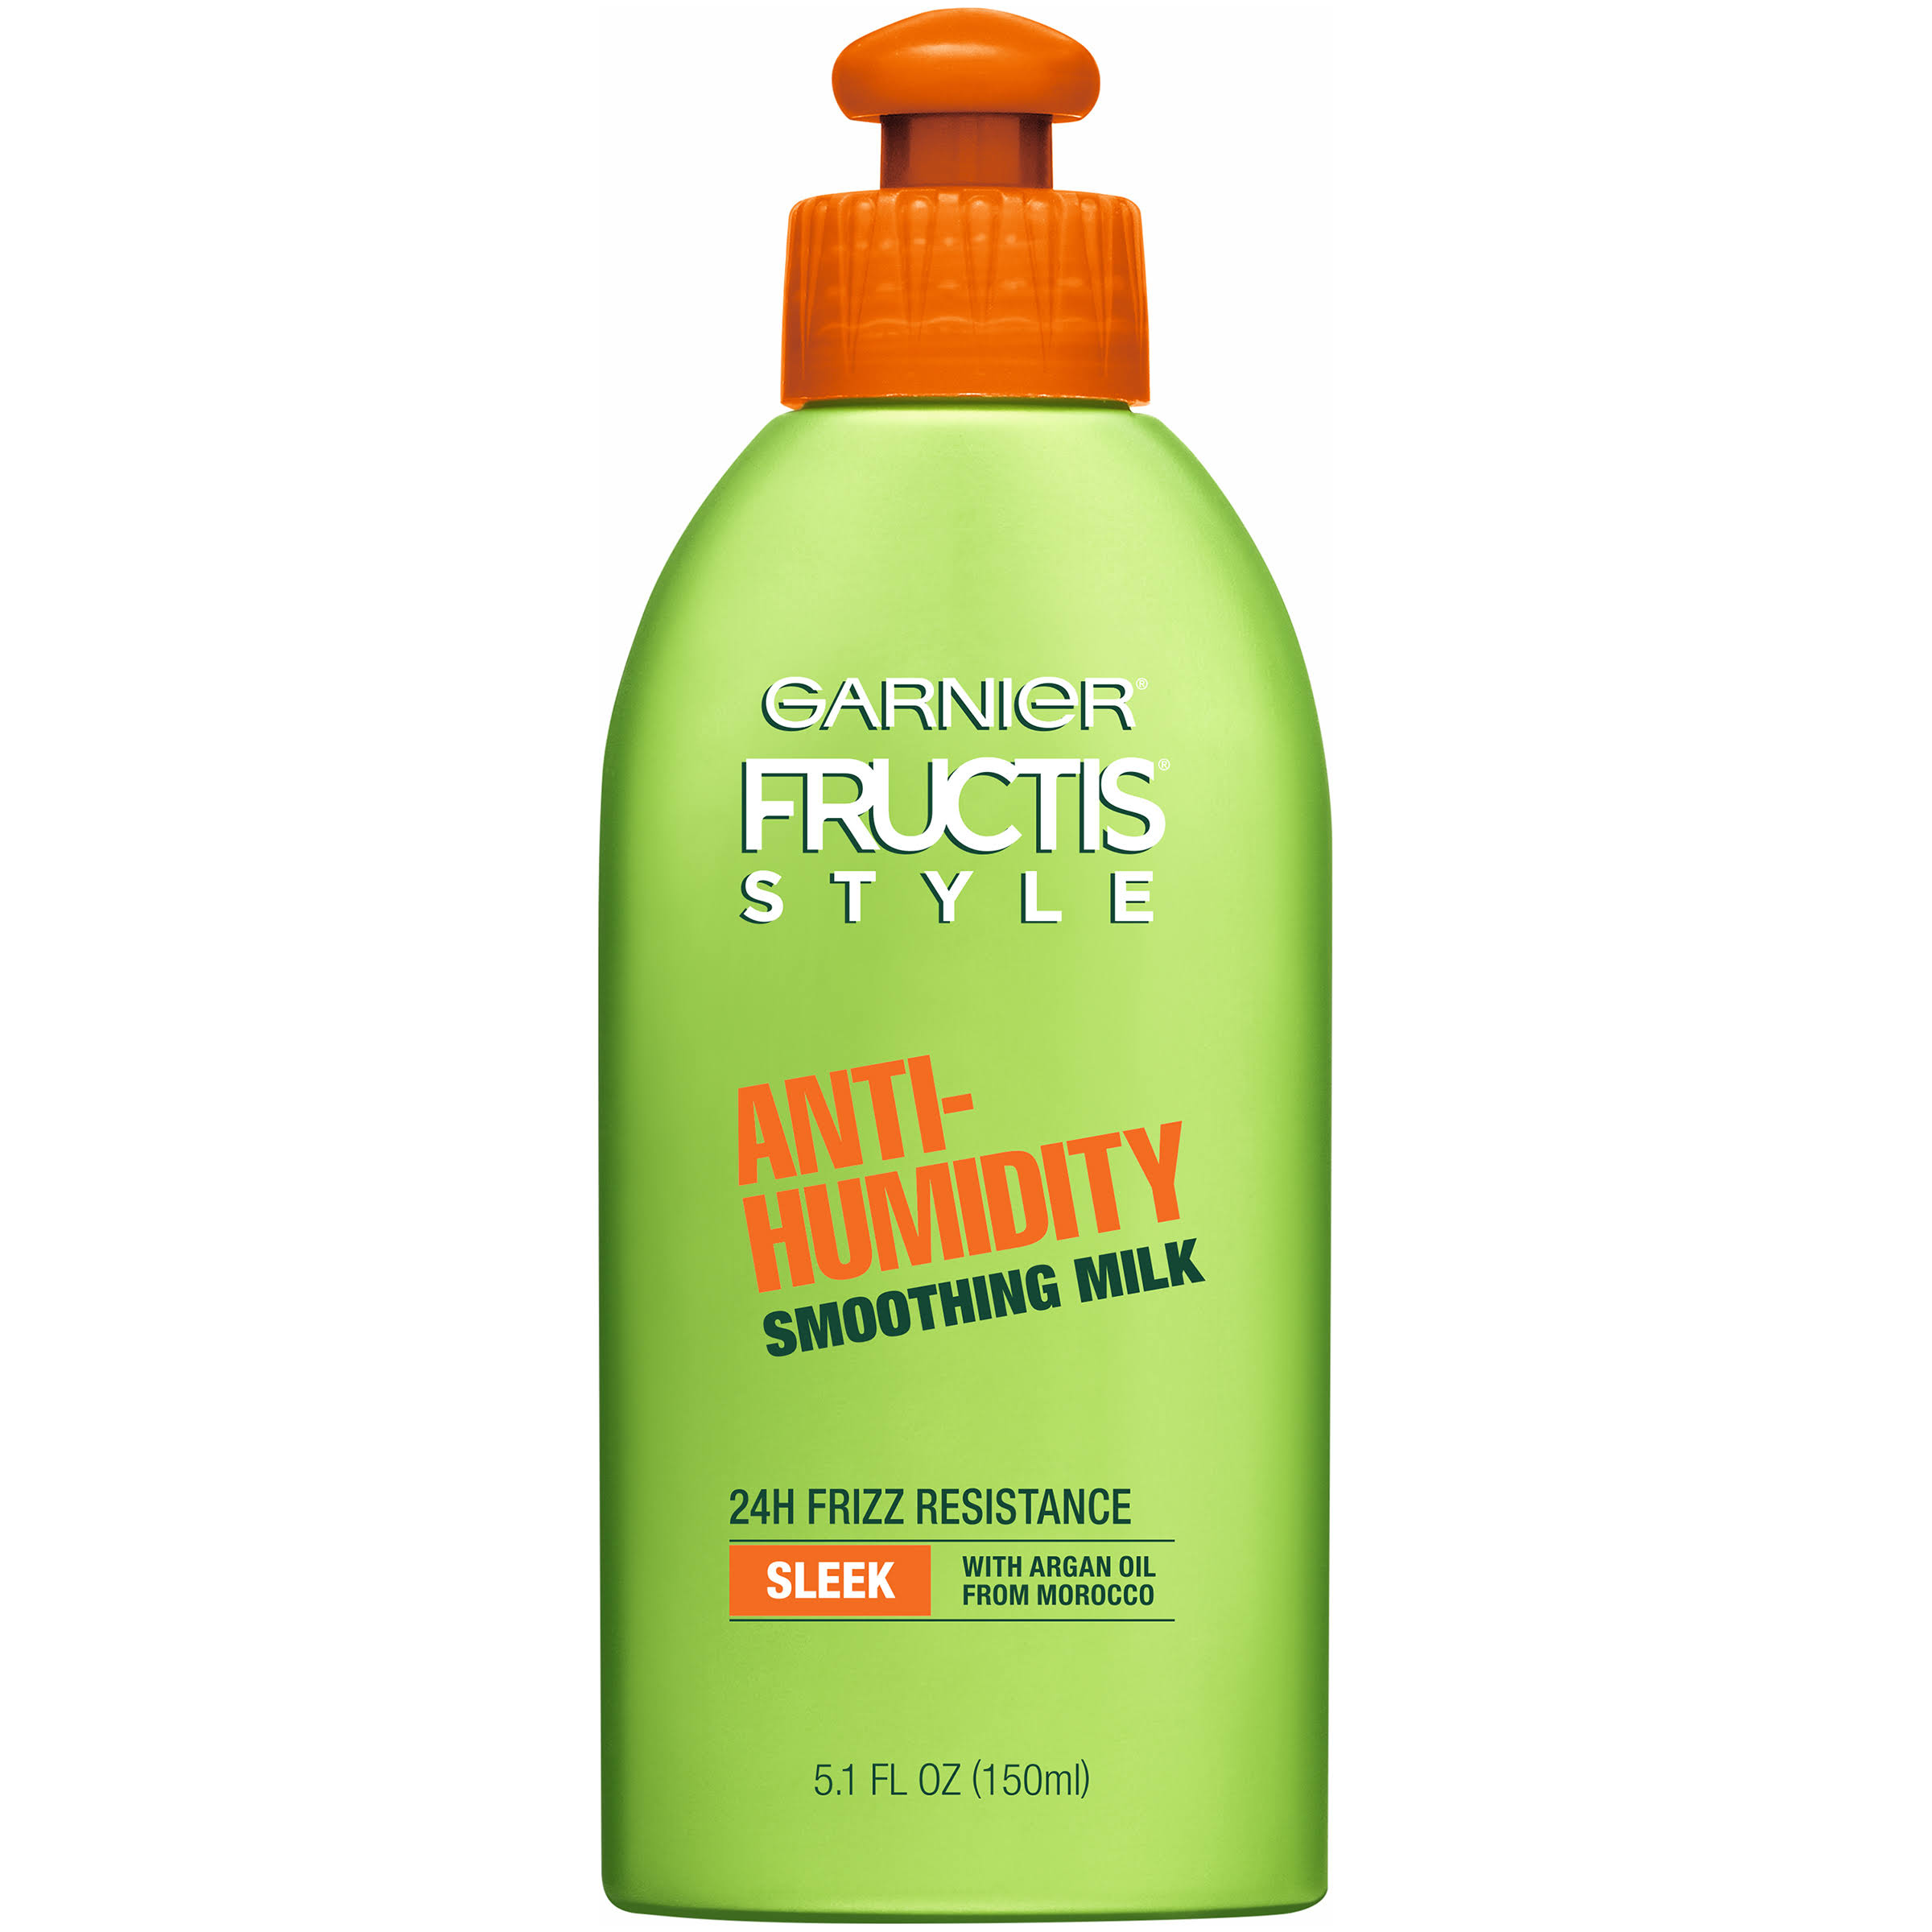 Garnier Fructis Style Sleek & Shine Smoothing Milk - 5.1oz